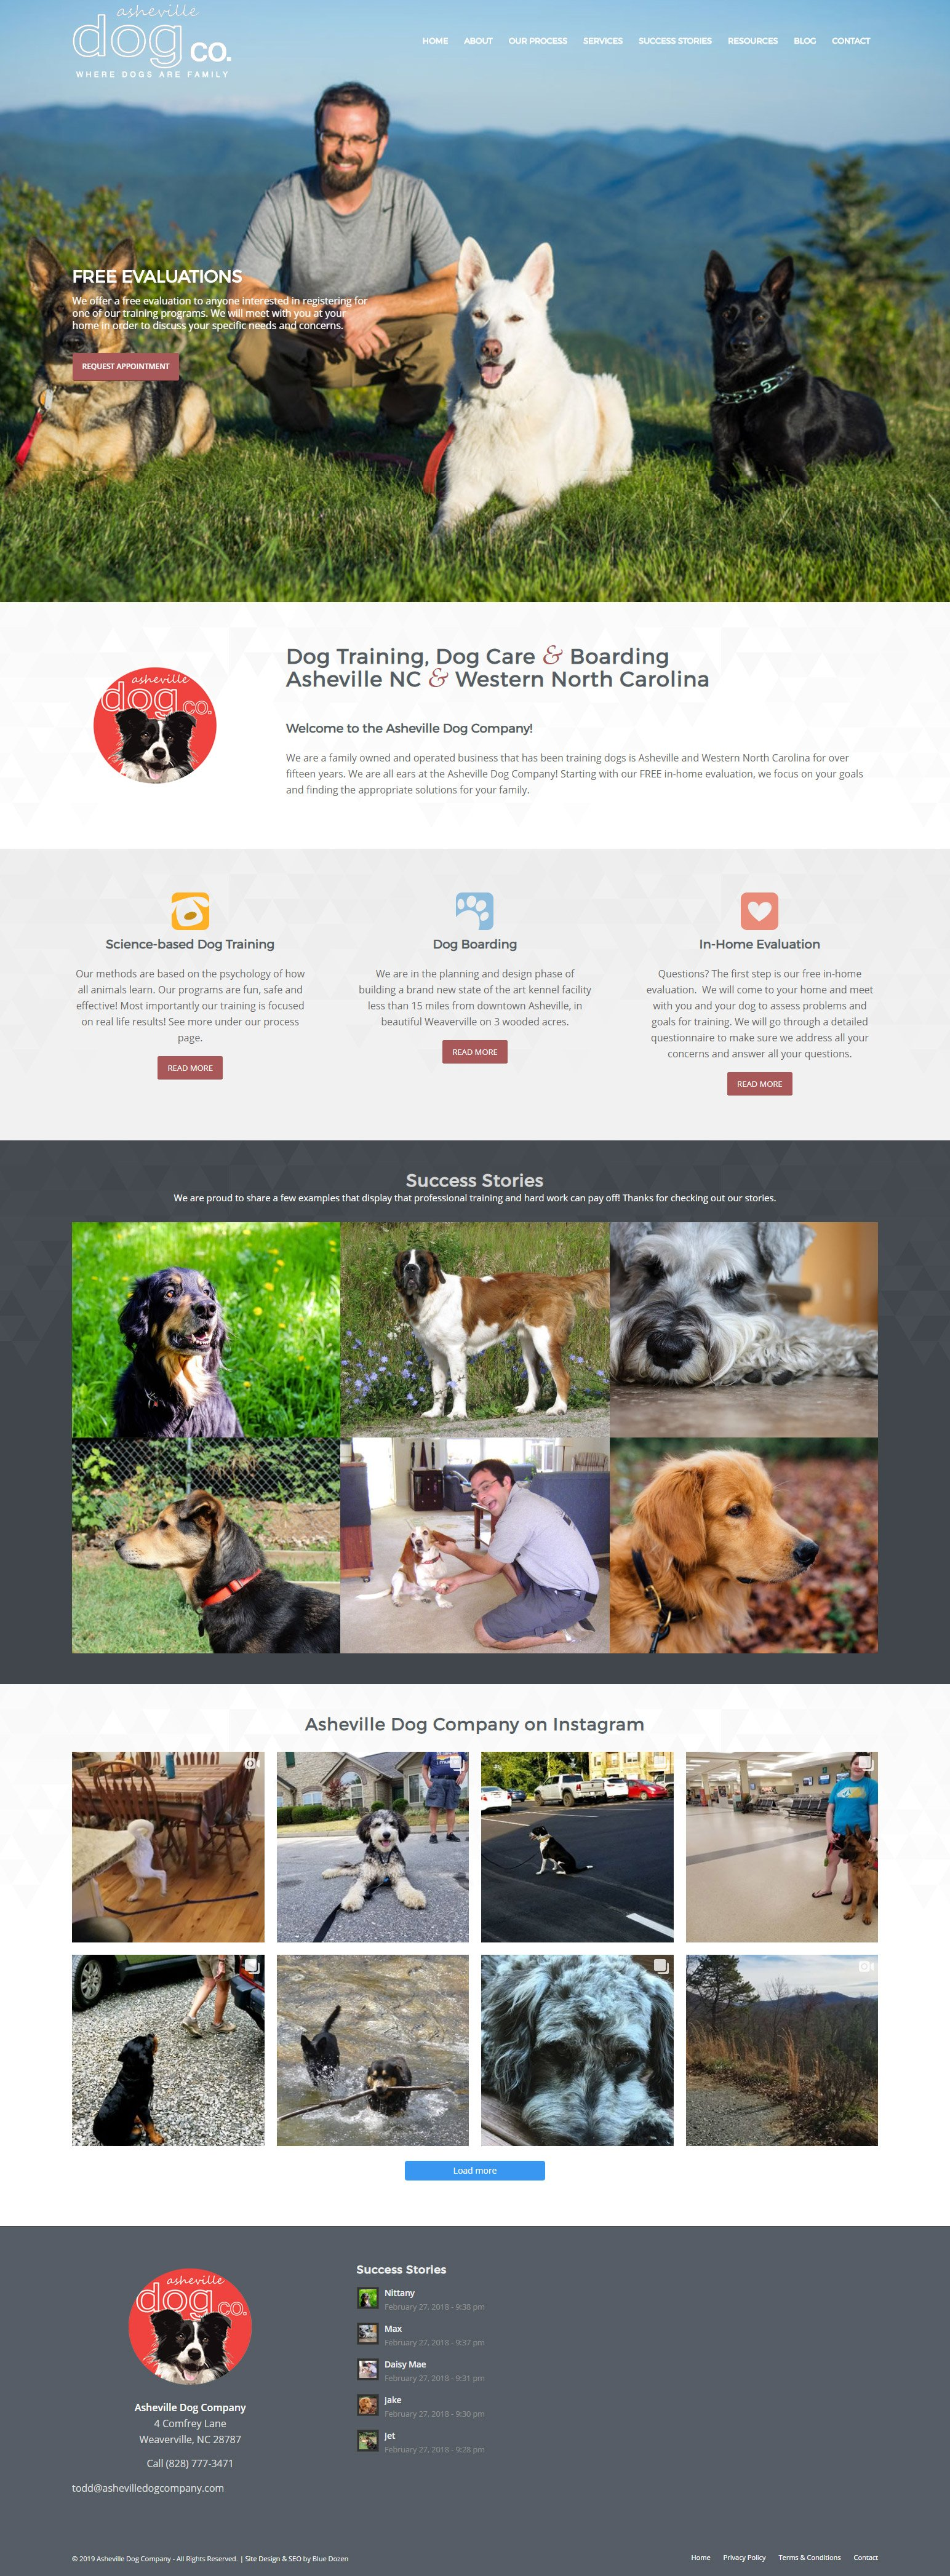 Asheville Dog Company Website Design